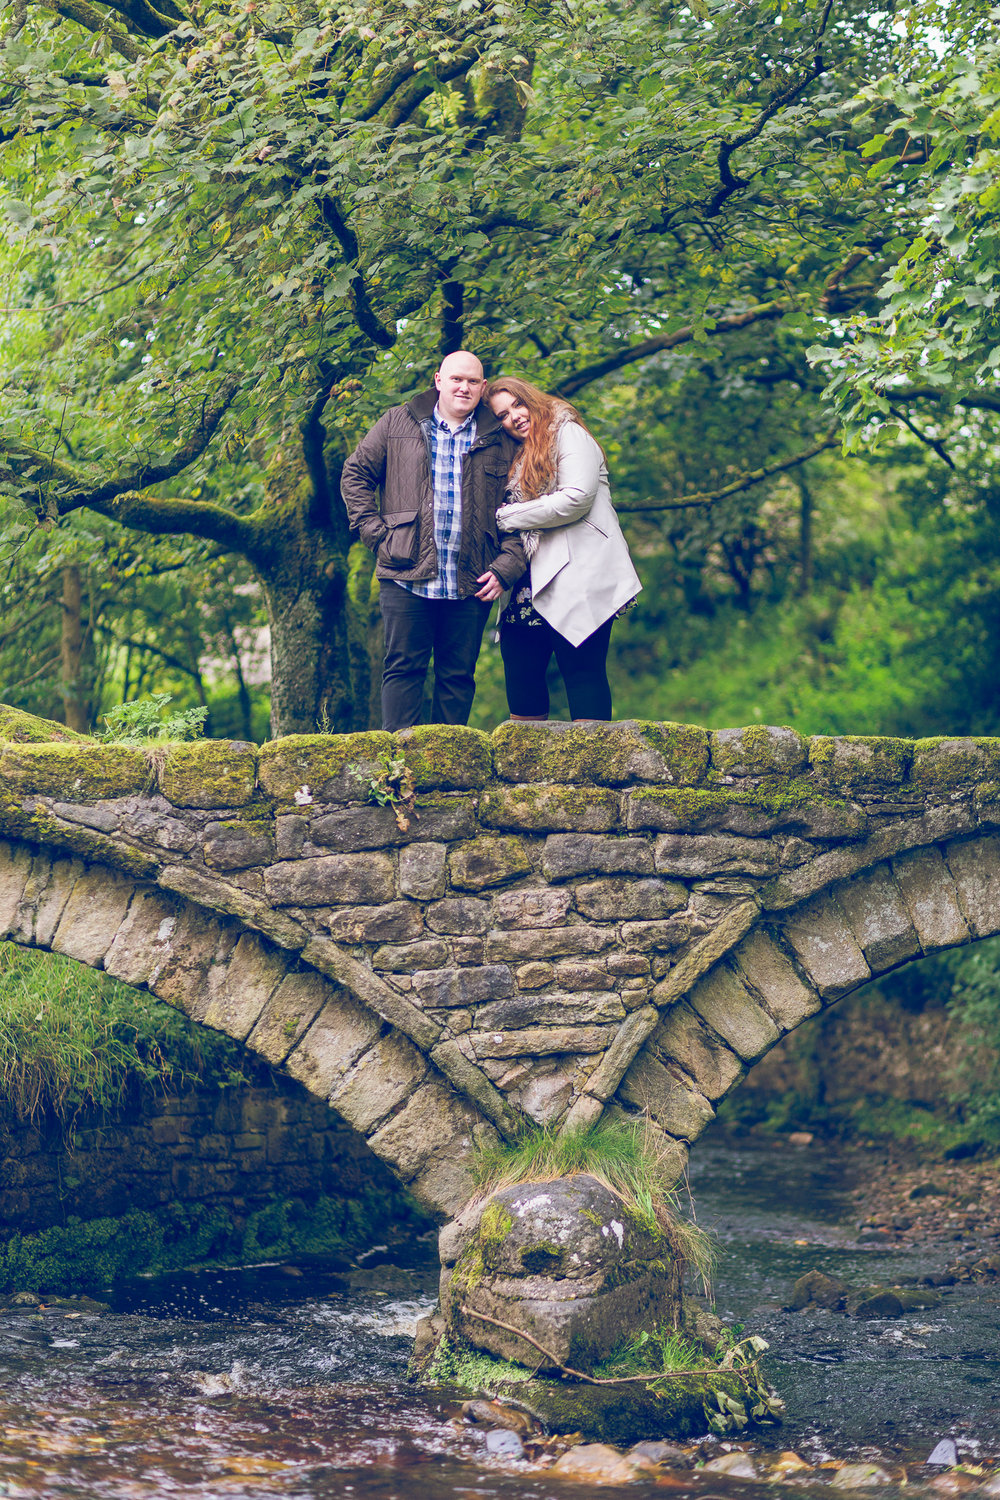 Colour-5-Melissa & Adam-Engagement-Wycoller Country Park-Lancashire-photo.jpg